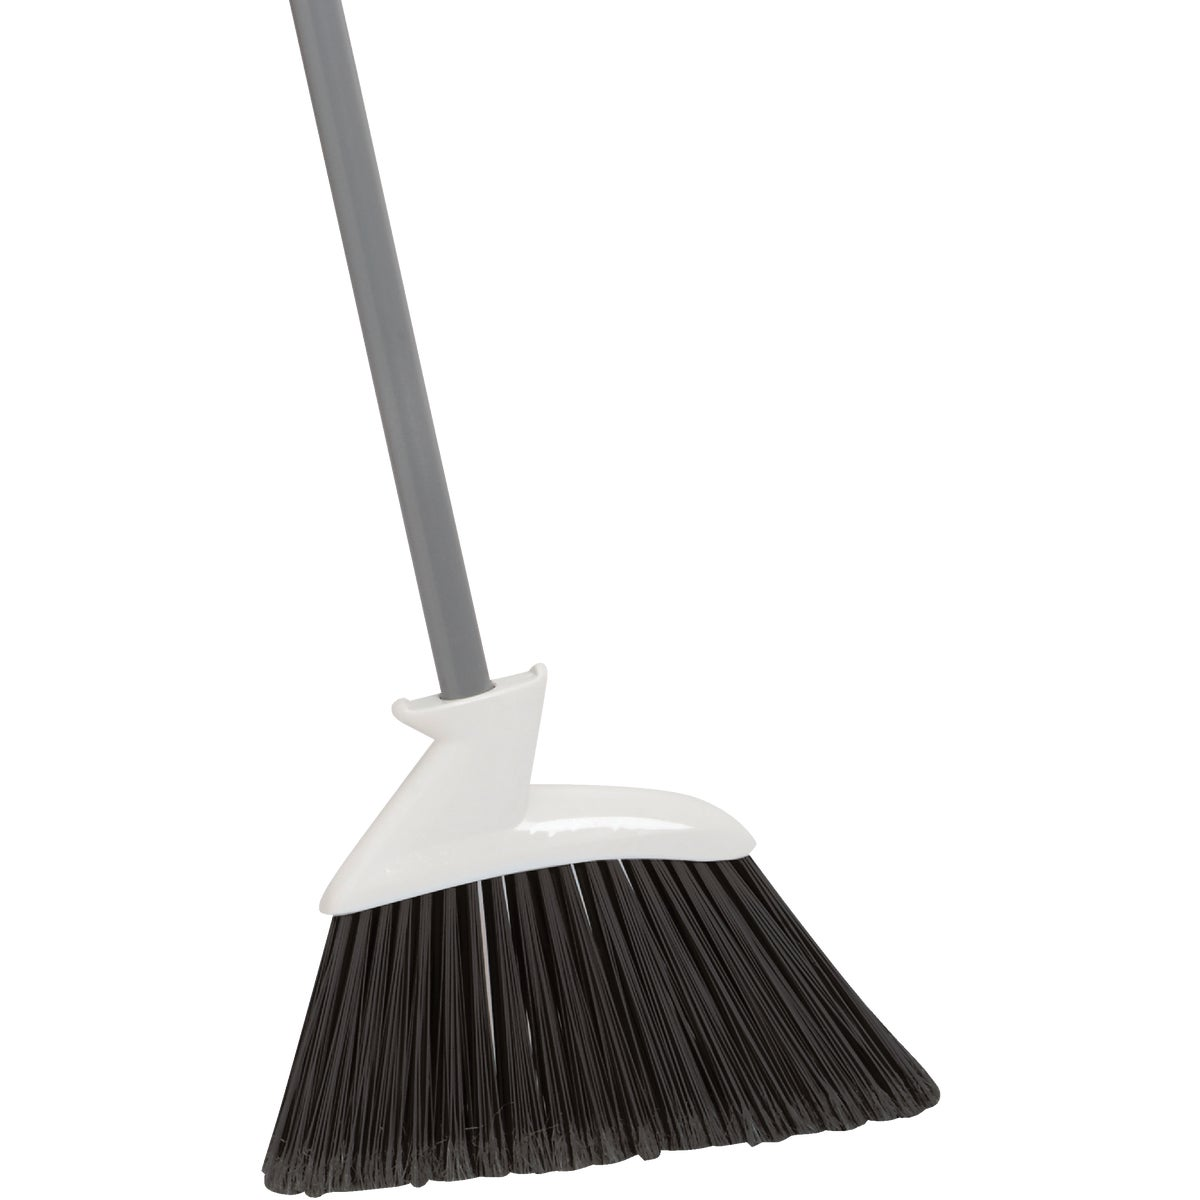 LARGE ANGLED BROOM